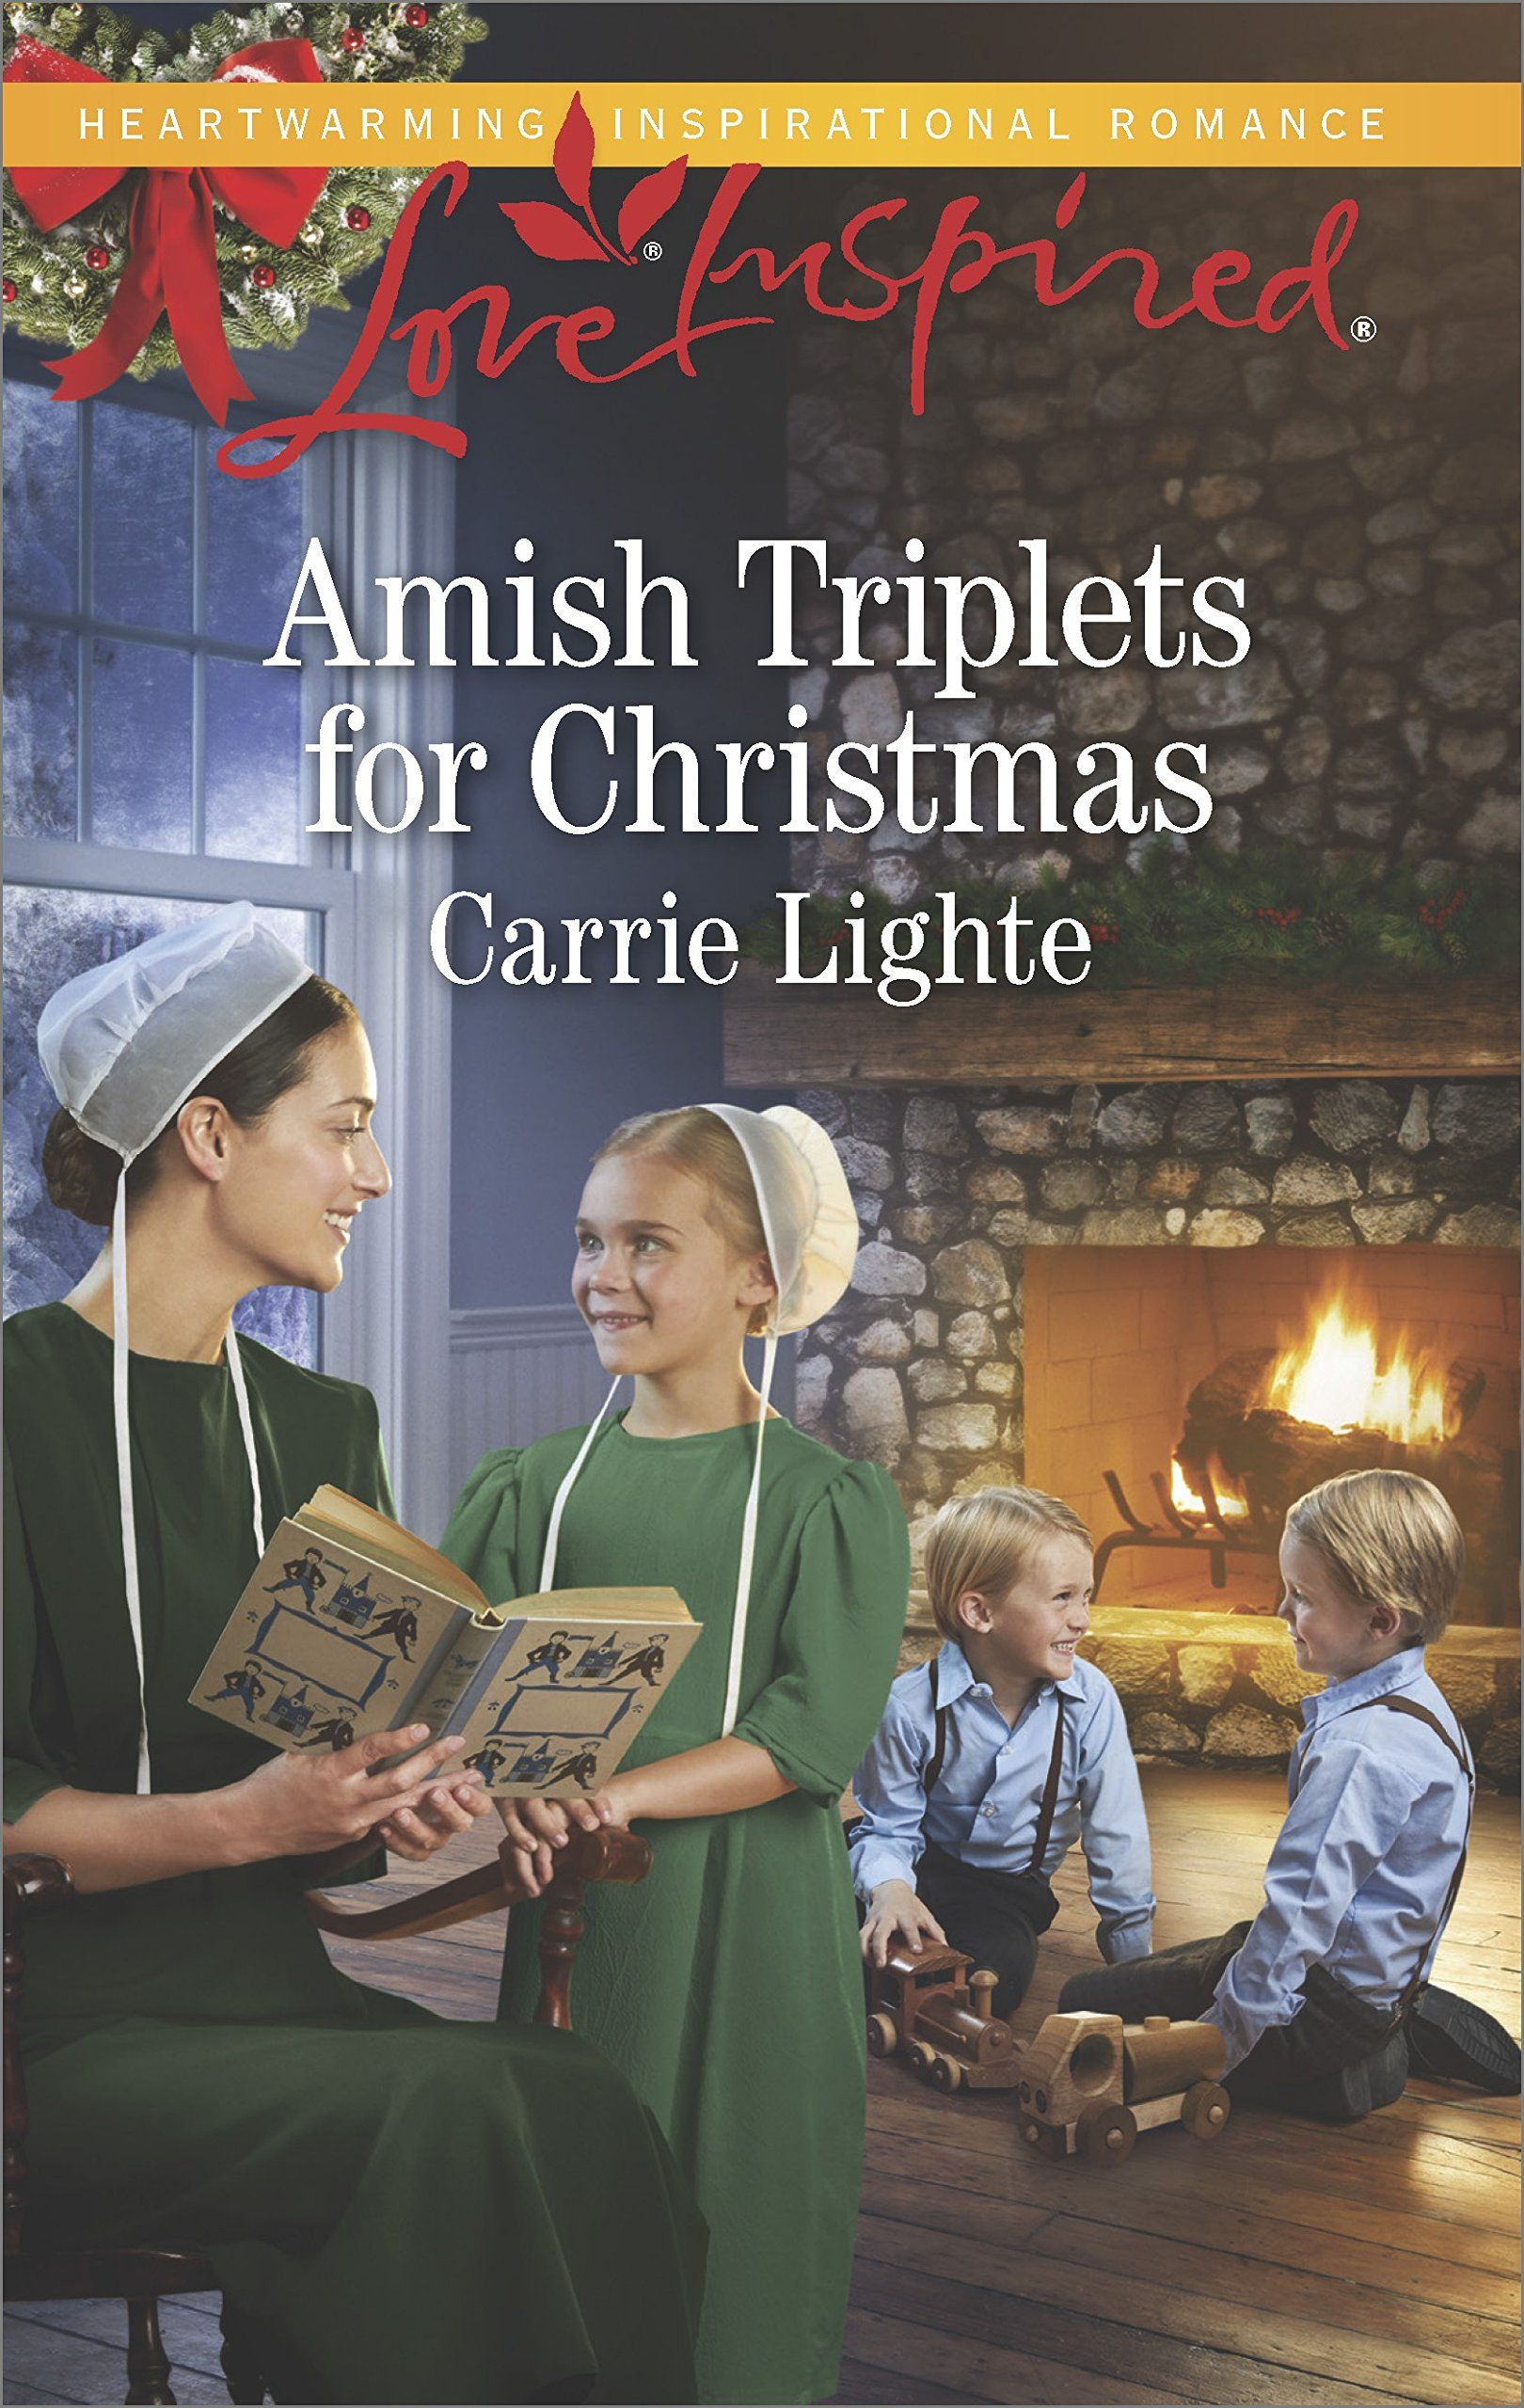 Carrie Lighte - Amish Triplets for Christmas / https://www.goodreads.